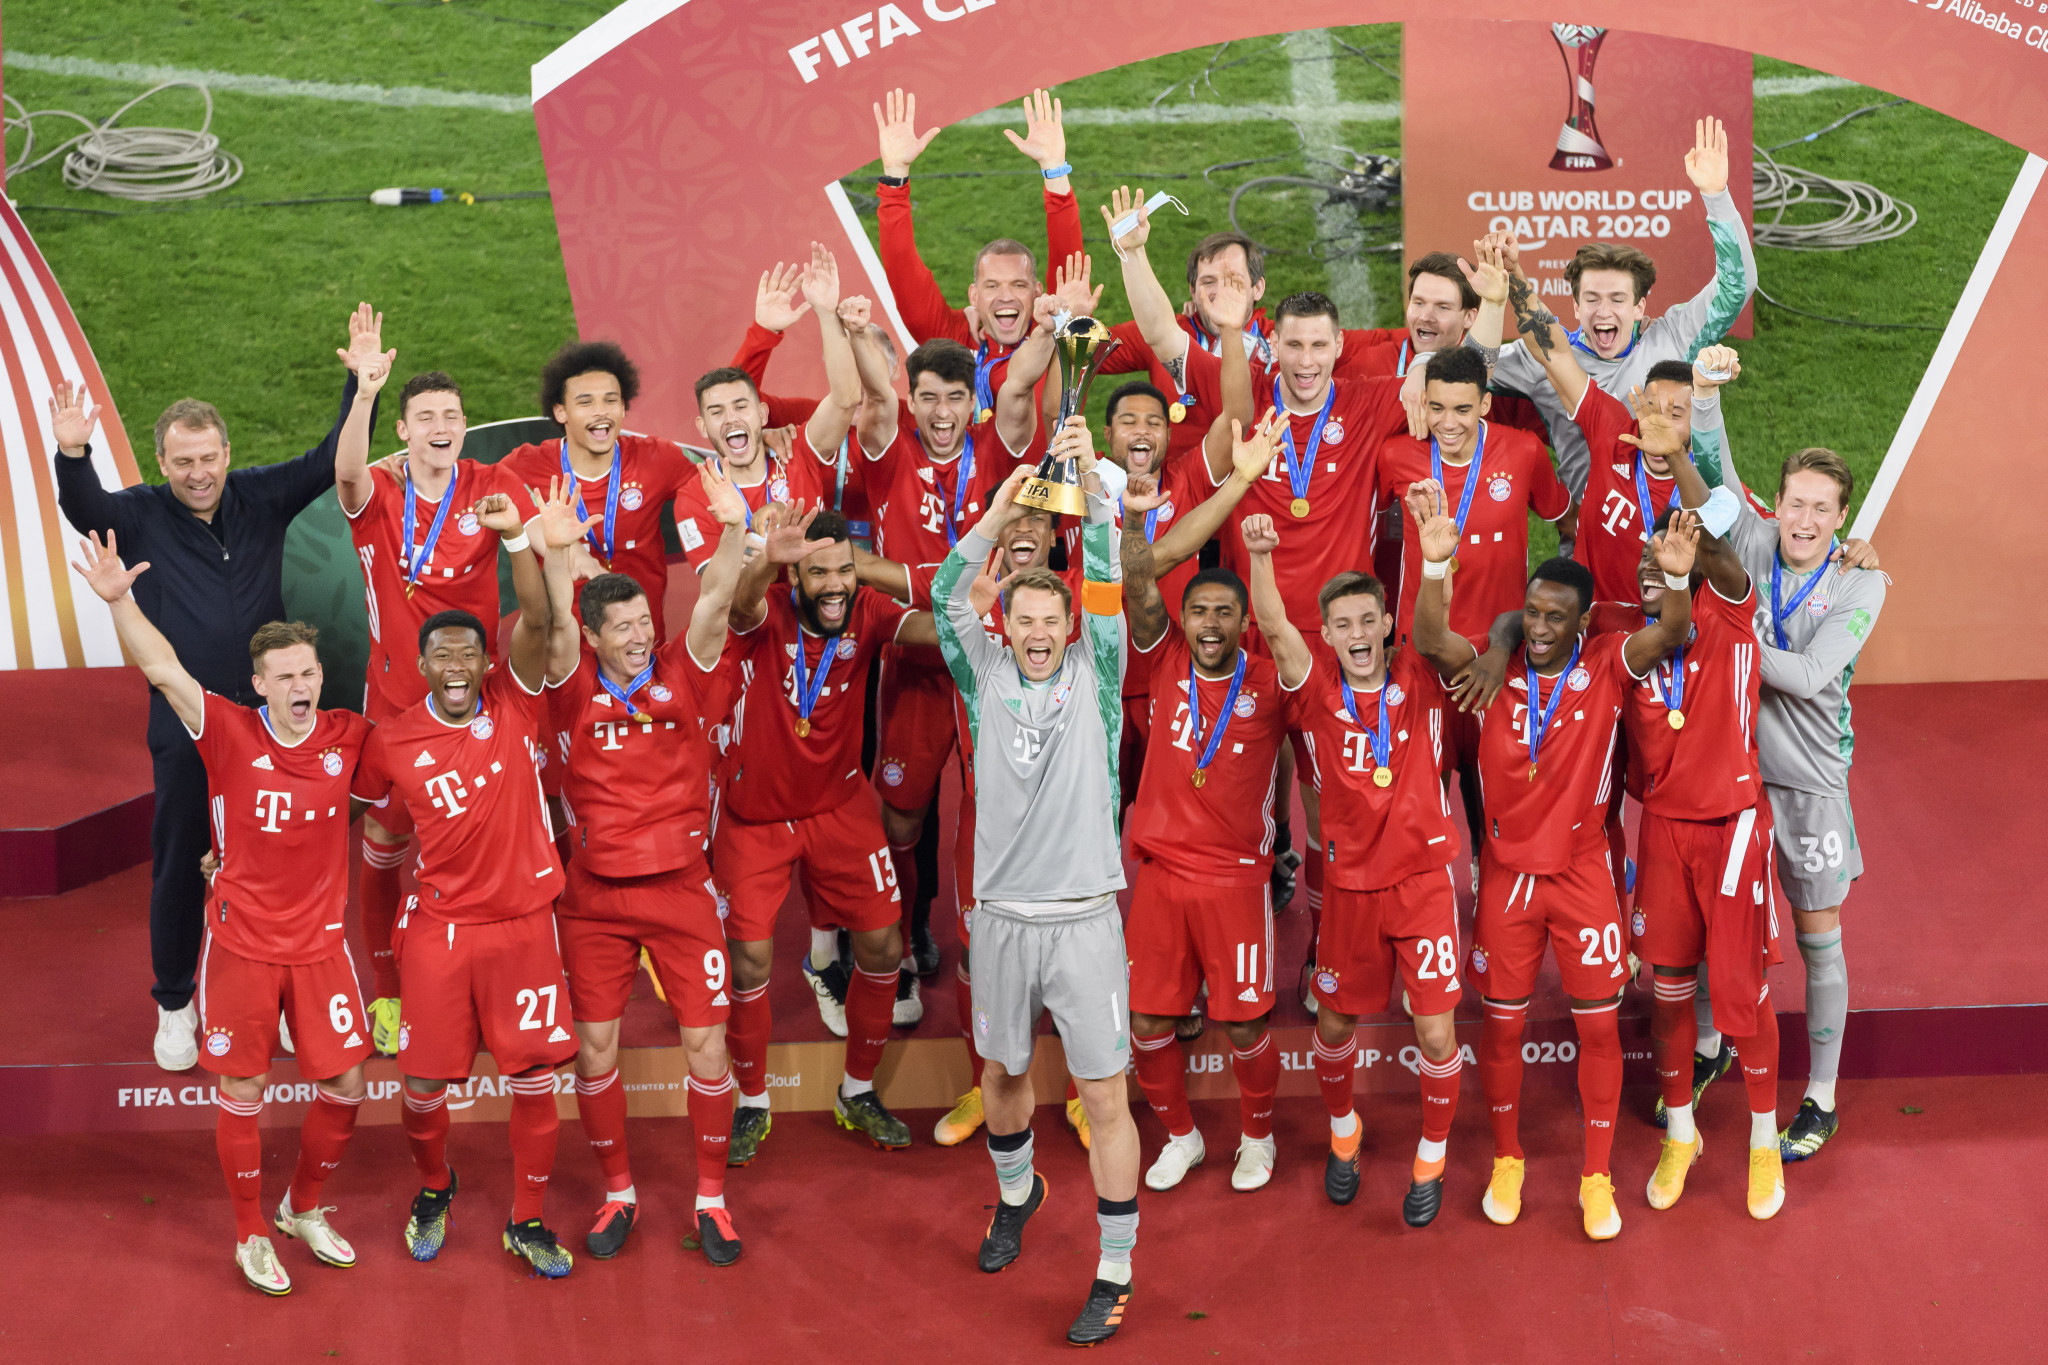 Pavard goal gives Bayern Munich second FIFA Club World Cup title